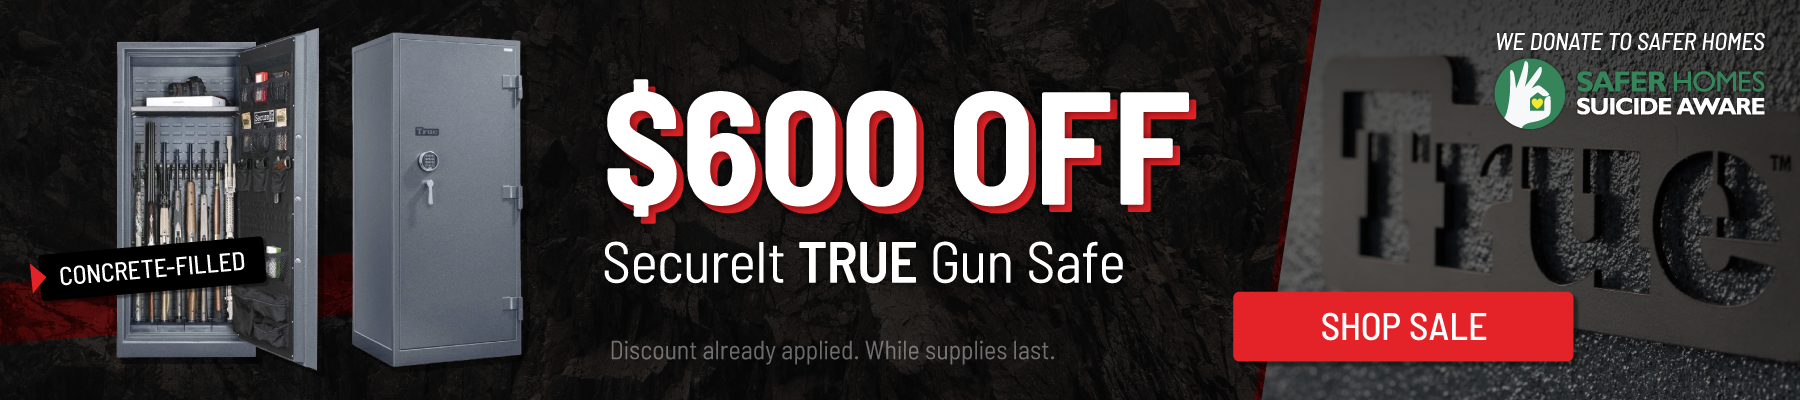 Save $600 on the SecureIt TRUE Gun Safe